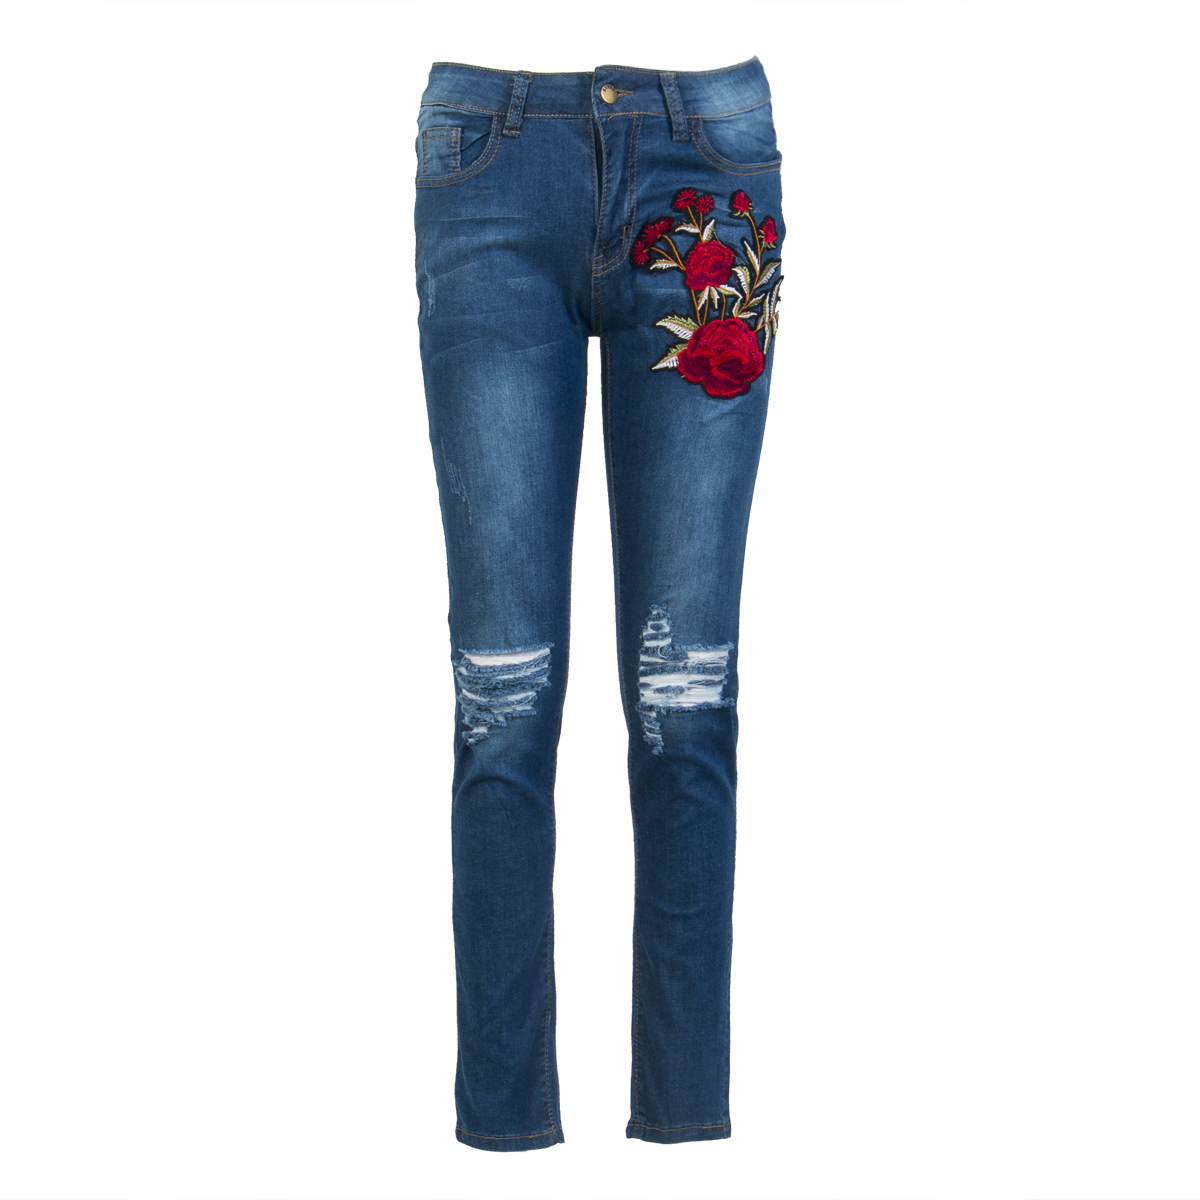 Plus Size Women Denim Skinny Pants High Waist Hole Stretch Trousers Slim Pencil Jeans Stylish Floral Embroidery Pencil Jeans цена и фото